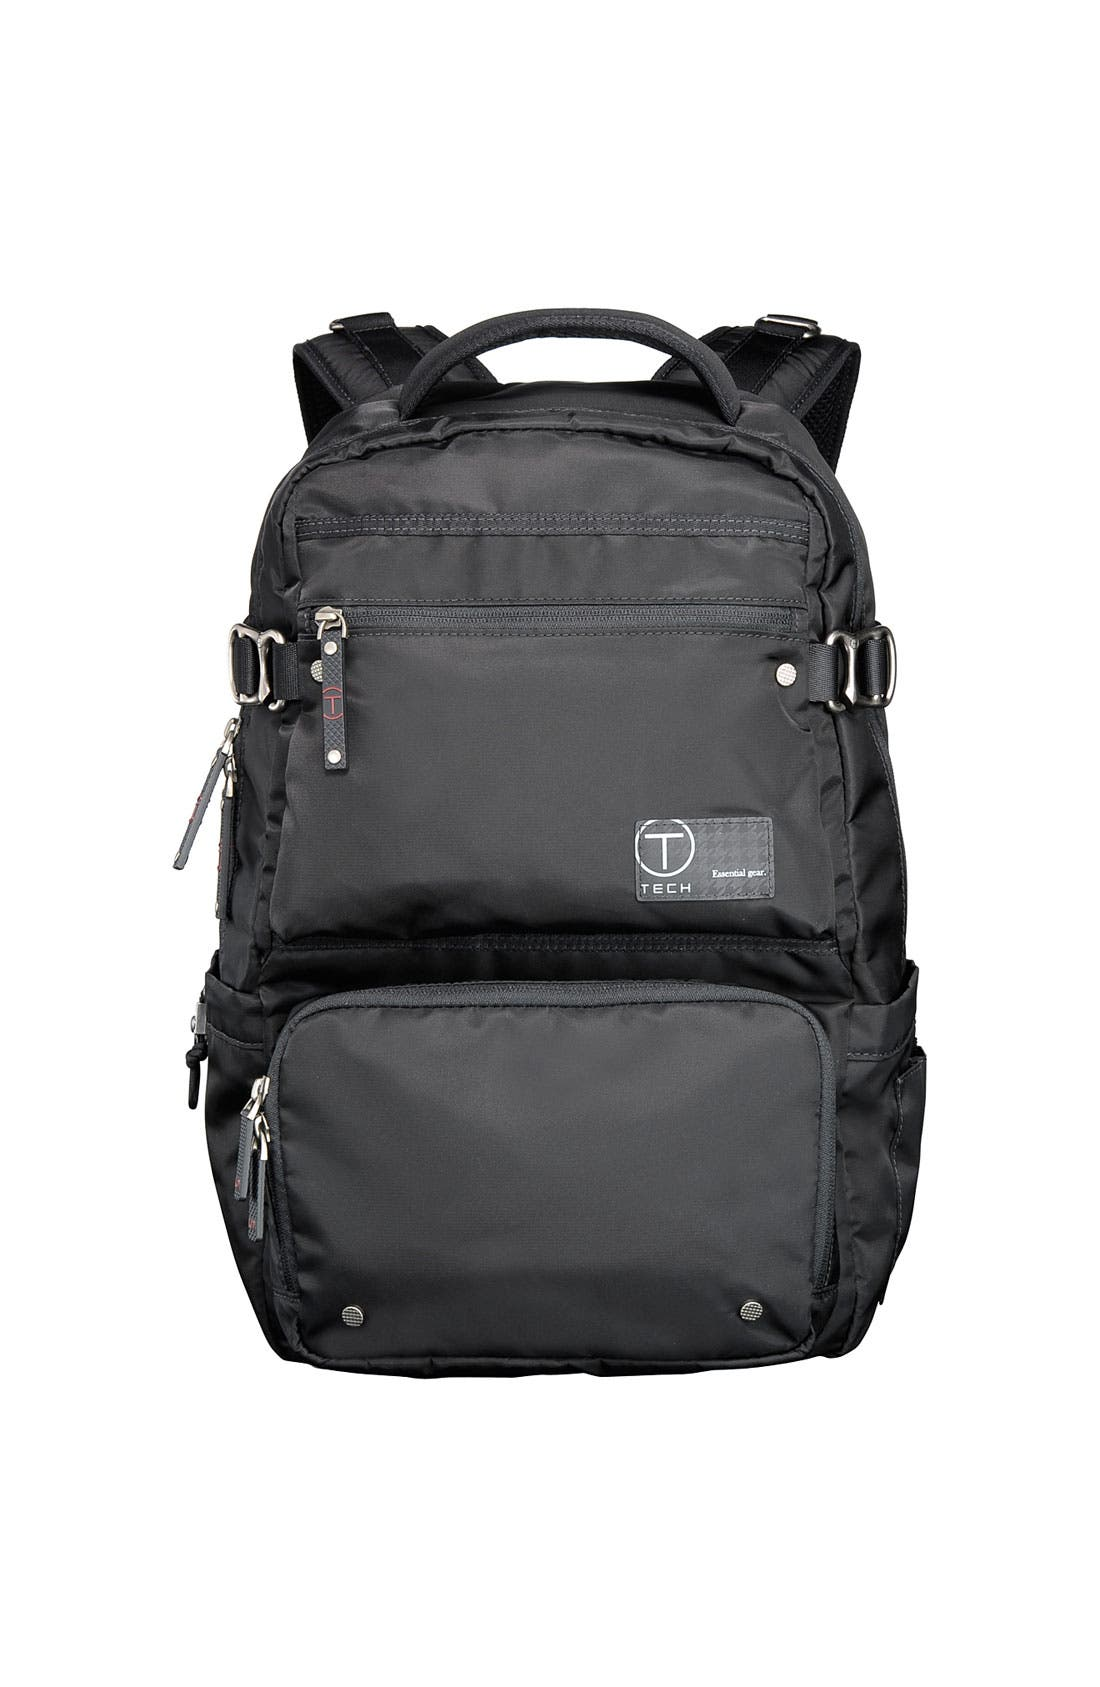 Alternate Image 1 Selected - Tumi 'T-Tech Mellville' Zip Top BriefPack®